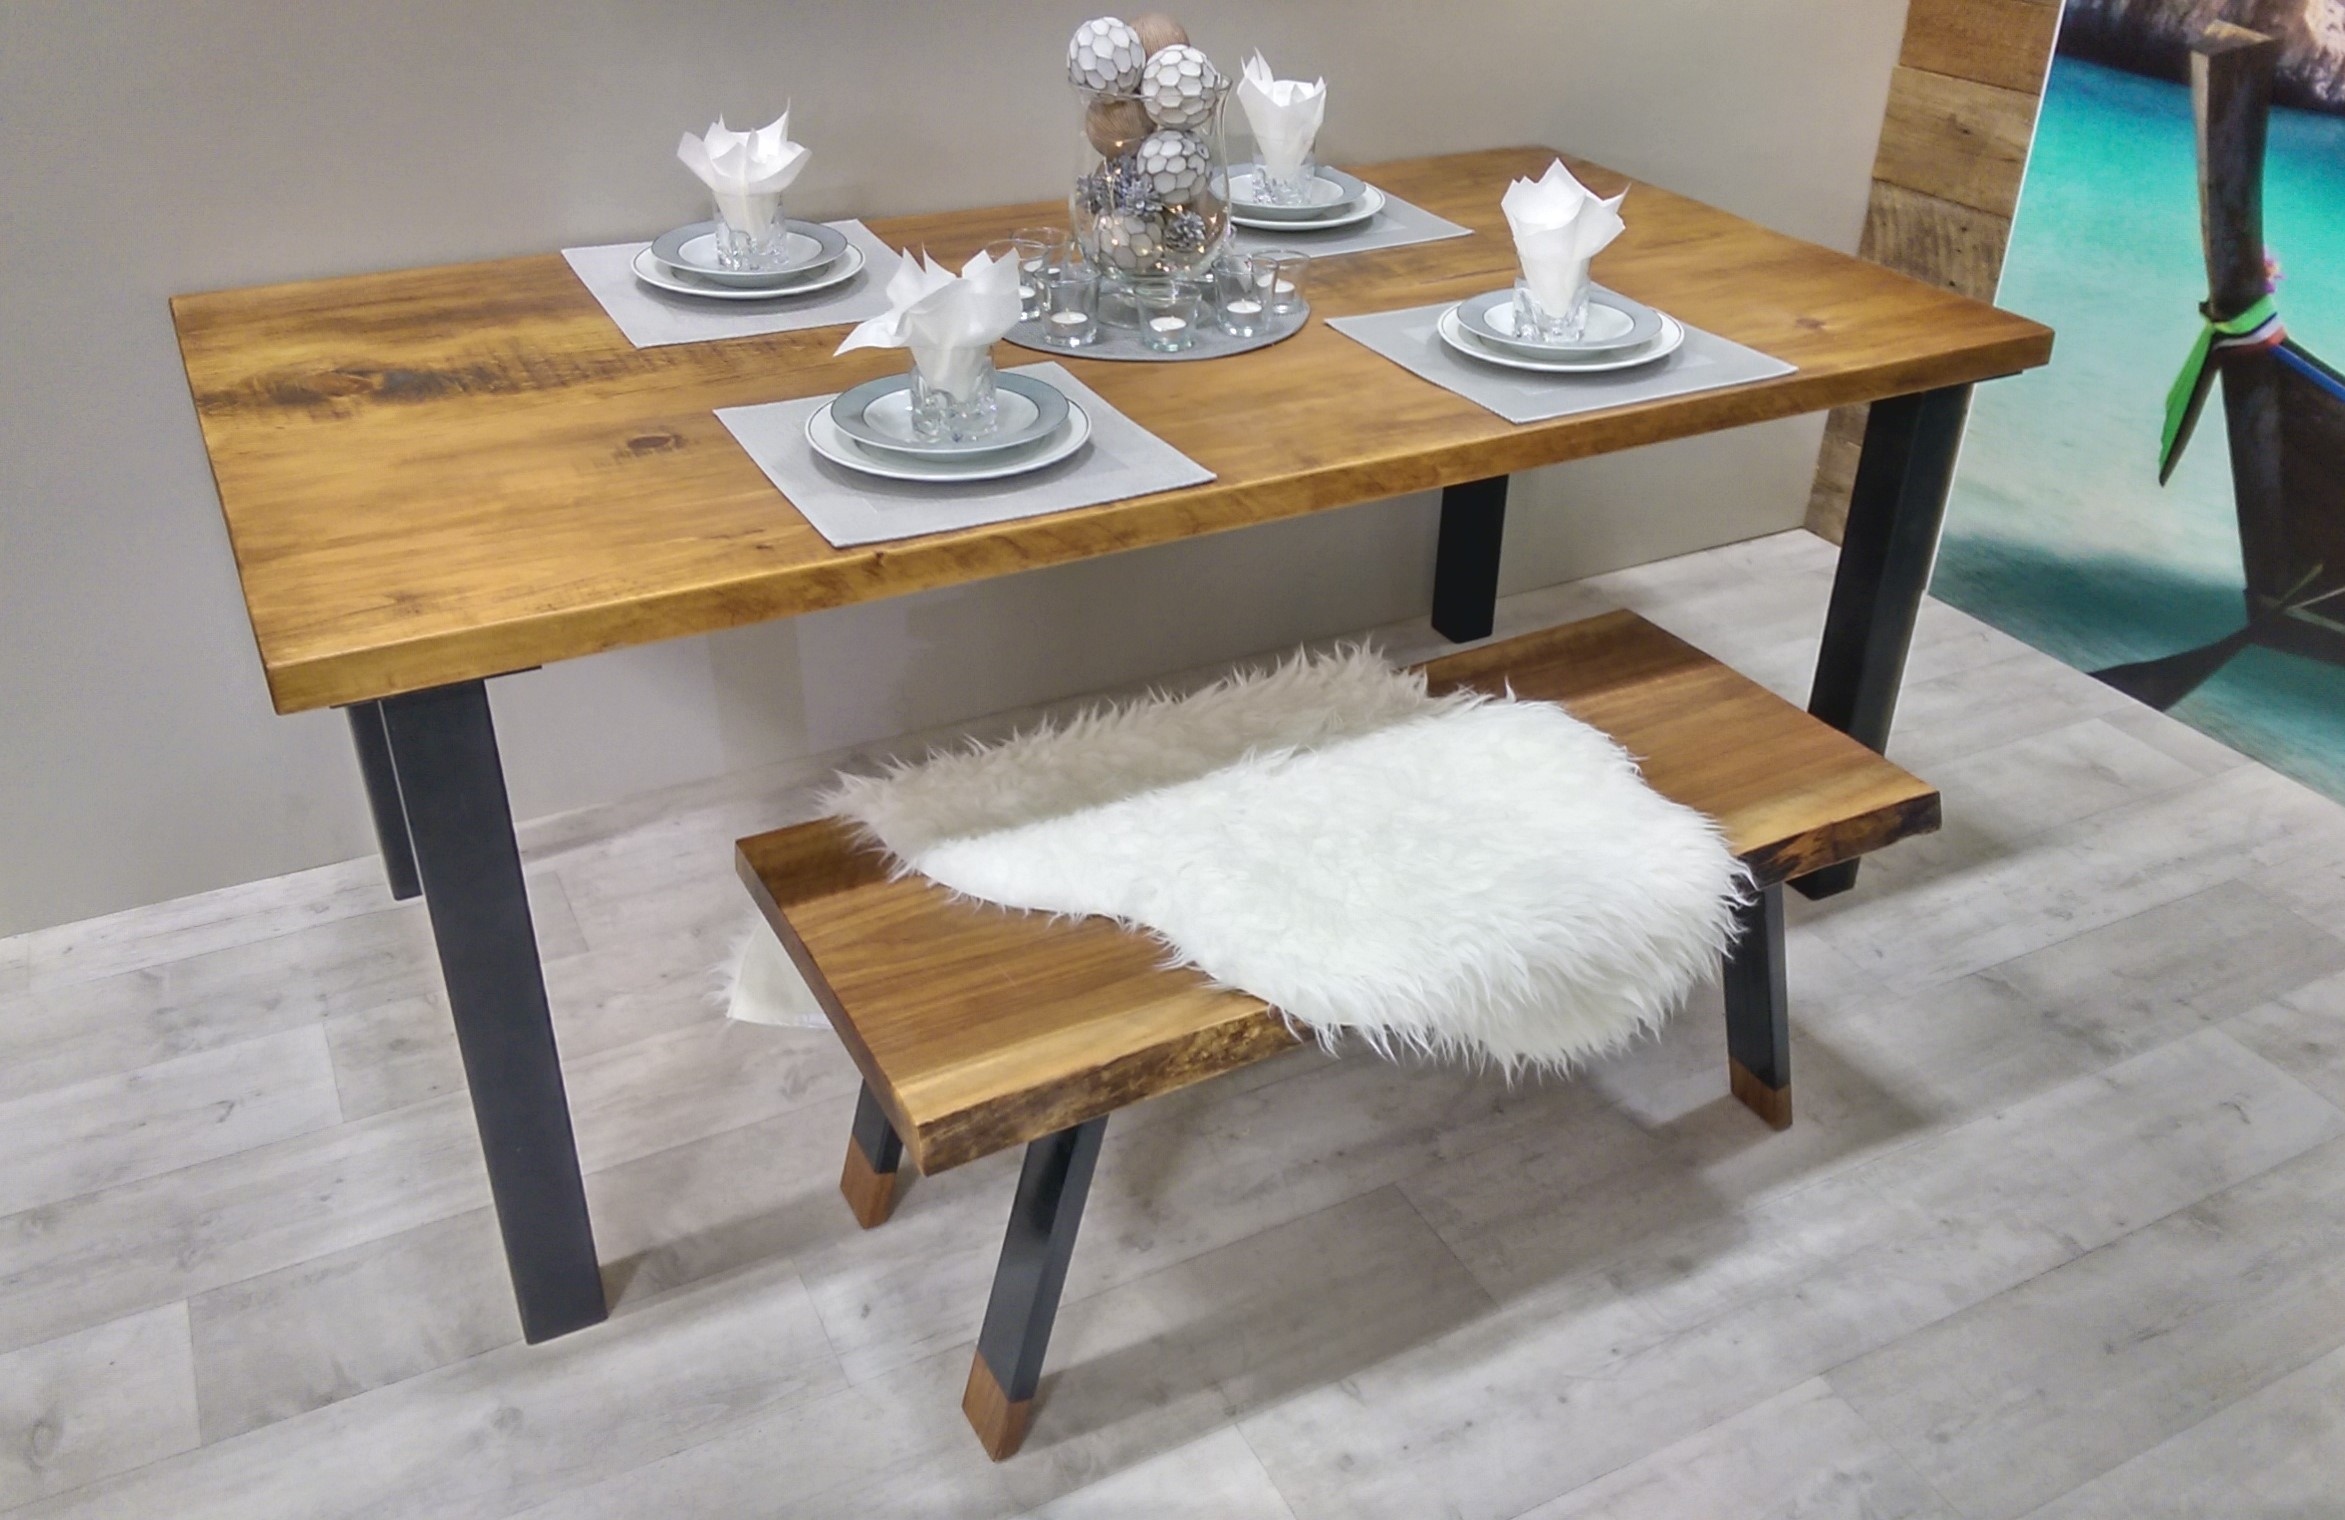 Table de cuisine rustika en bois m tal table d ner - Table sur mesure lapeyre ...